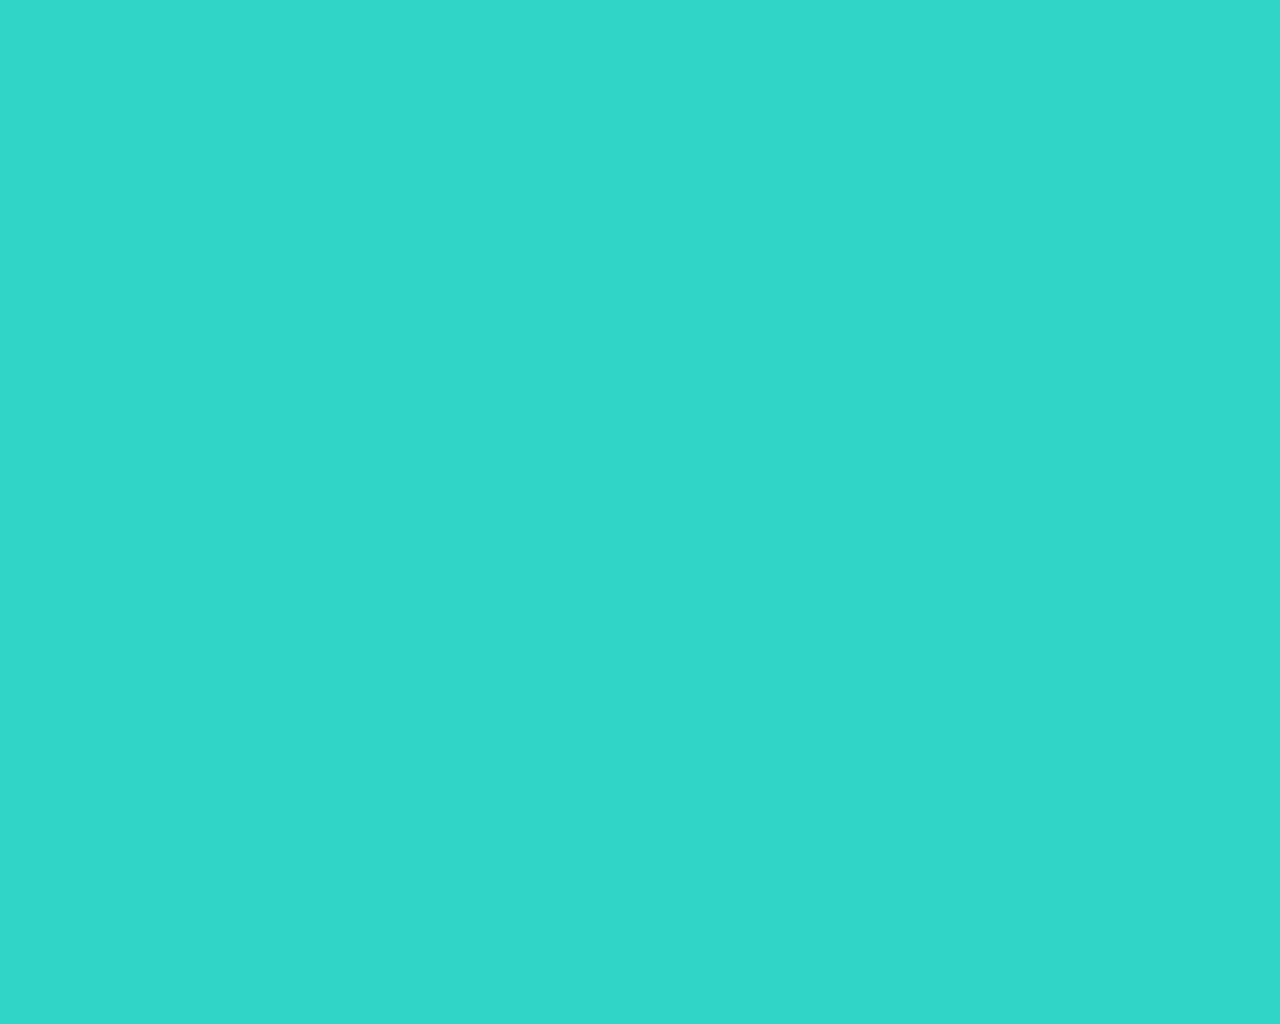 Turquoise Backgrounds - Wallpaper Cave Plain Teal Background